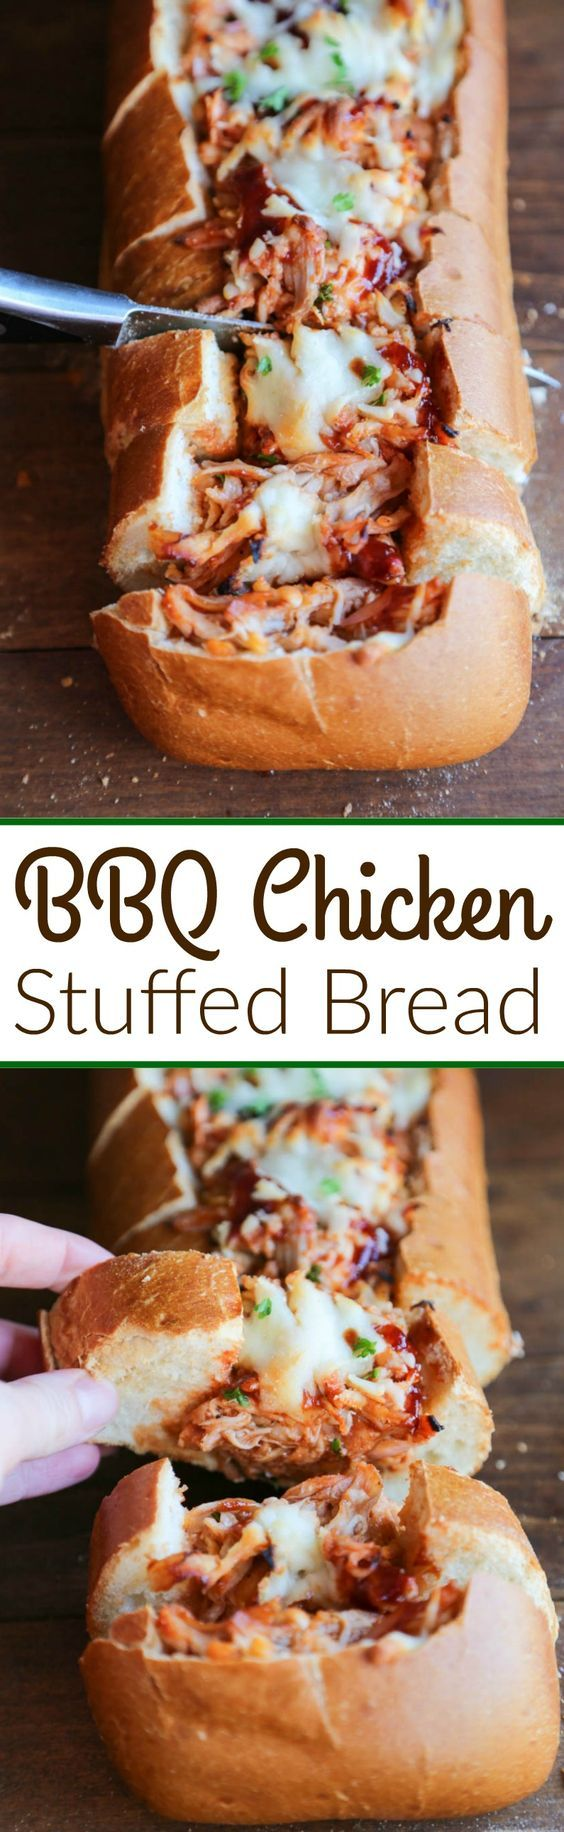 BBQ Chicken Stuffed Bread - Crusty artisan bread filled with cheesy bbq chicken filling. A fun twist to traditional BBQ chicken pizza--perfect for game day appetizers or an easy dinner idea.   Tastes Better From Scratch